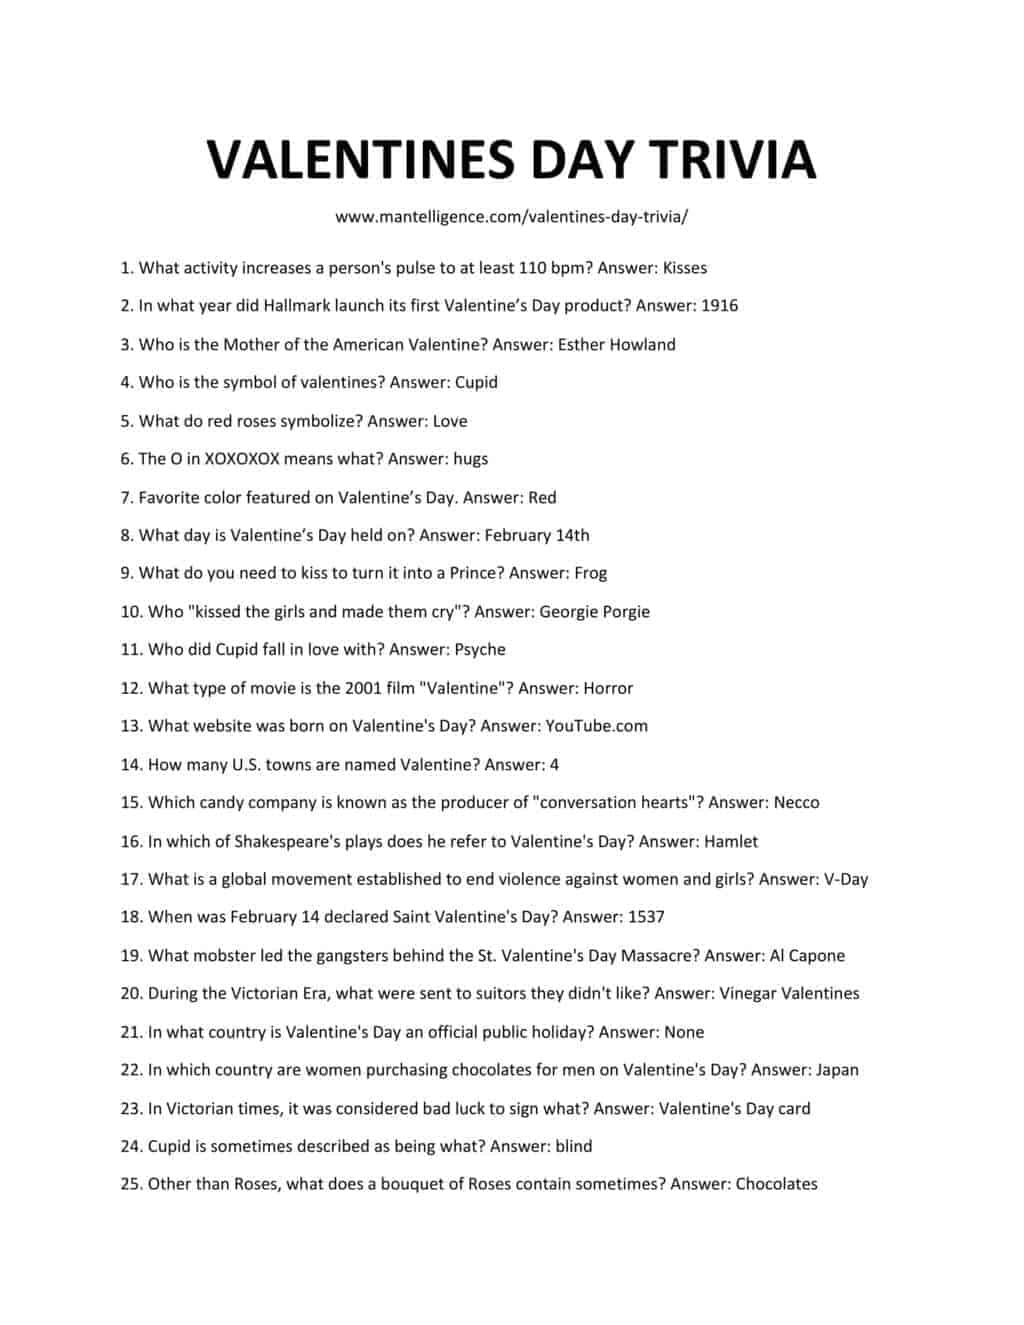 Downloadable and printable list of valentines day trivia as jpg or pdf